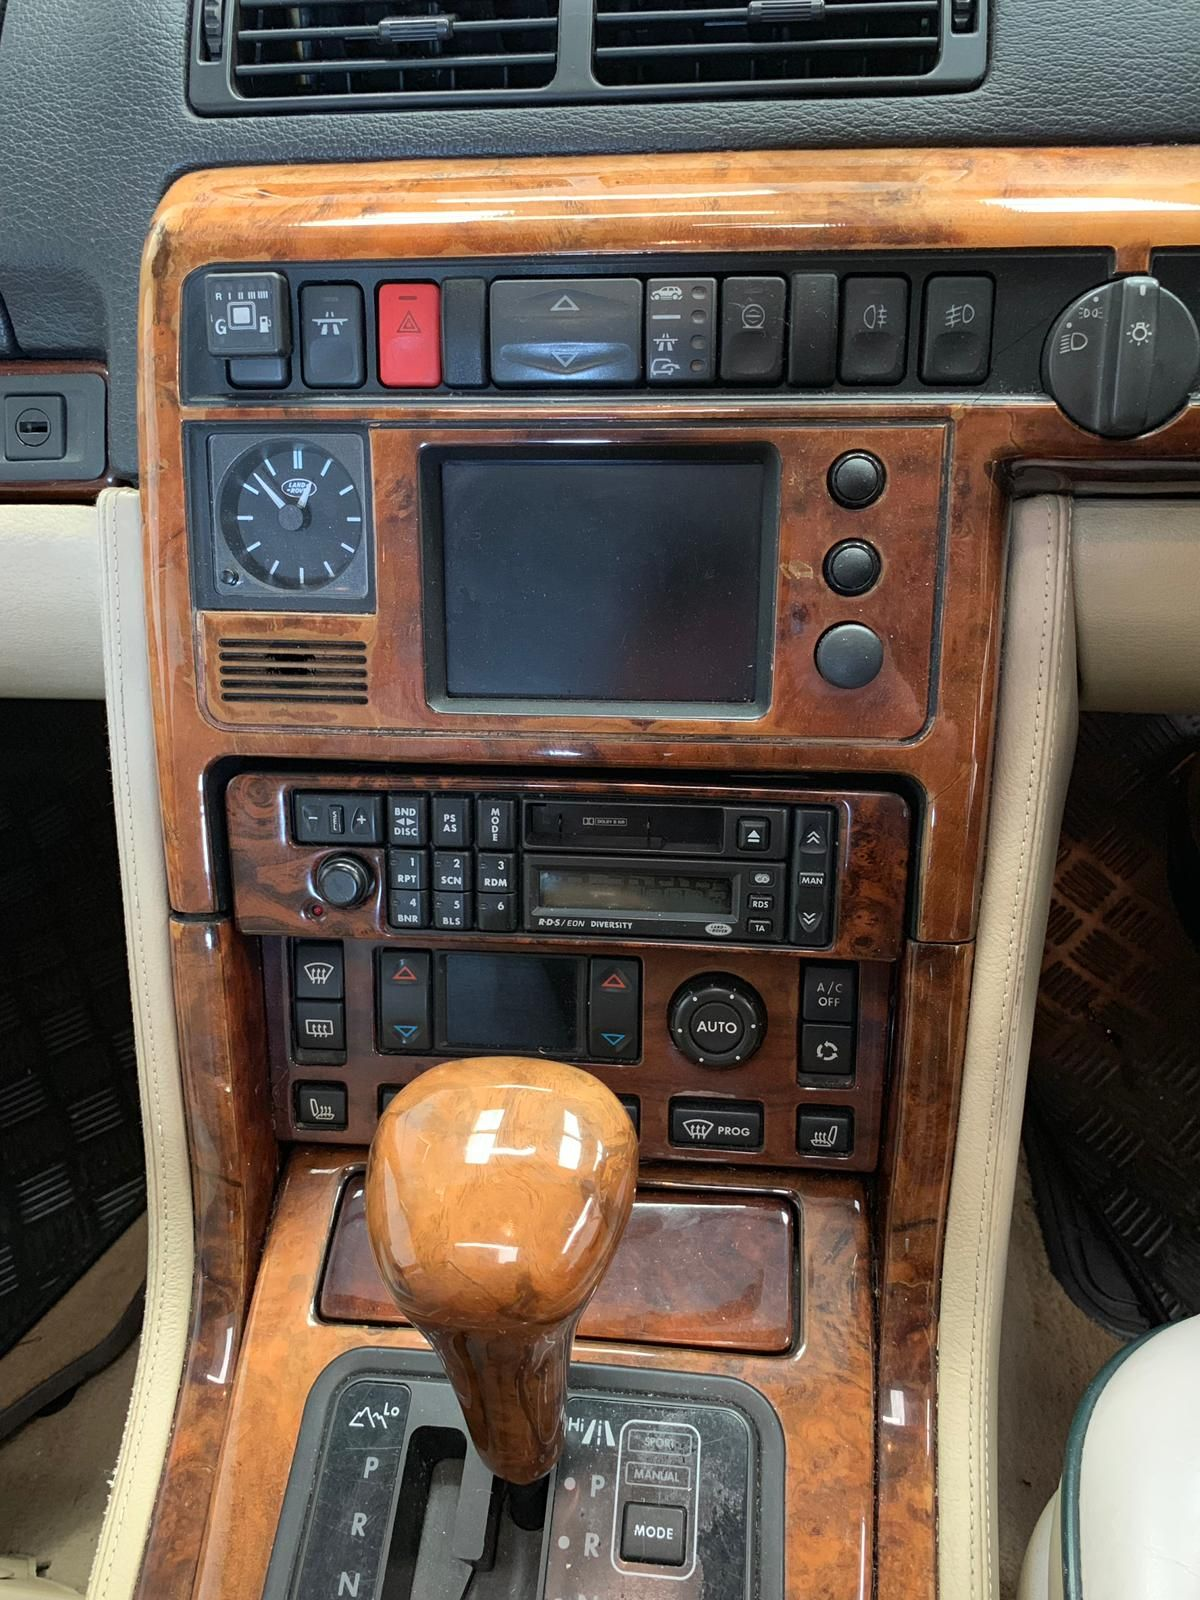 Range Rover 1997 Autobiography - with cassette player before installing new radio